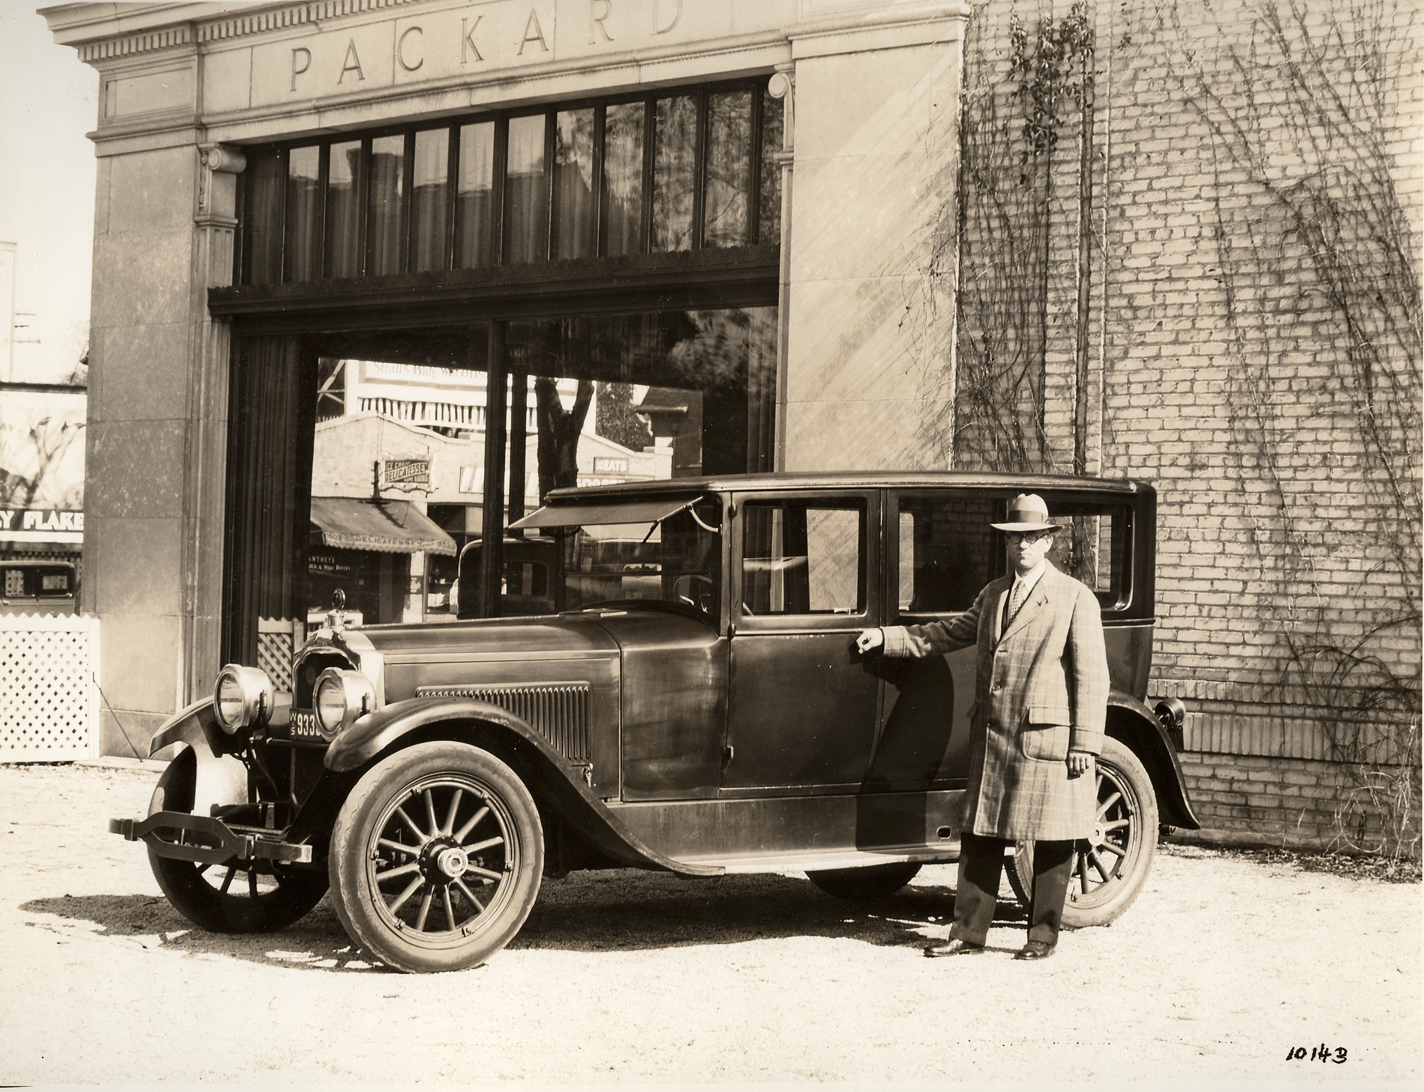 Car Dealerships New Orleans >> 1922-1923 Packard sedan, in front of Packard dealership with owner Thomas Allen | DPL DAMS